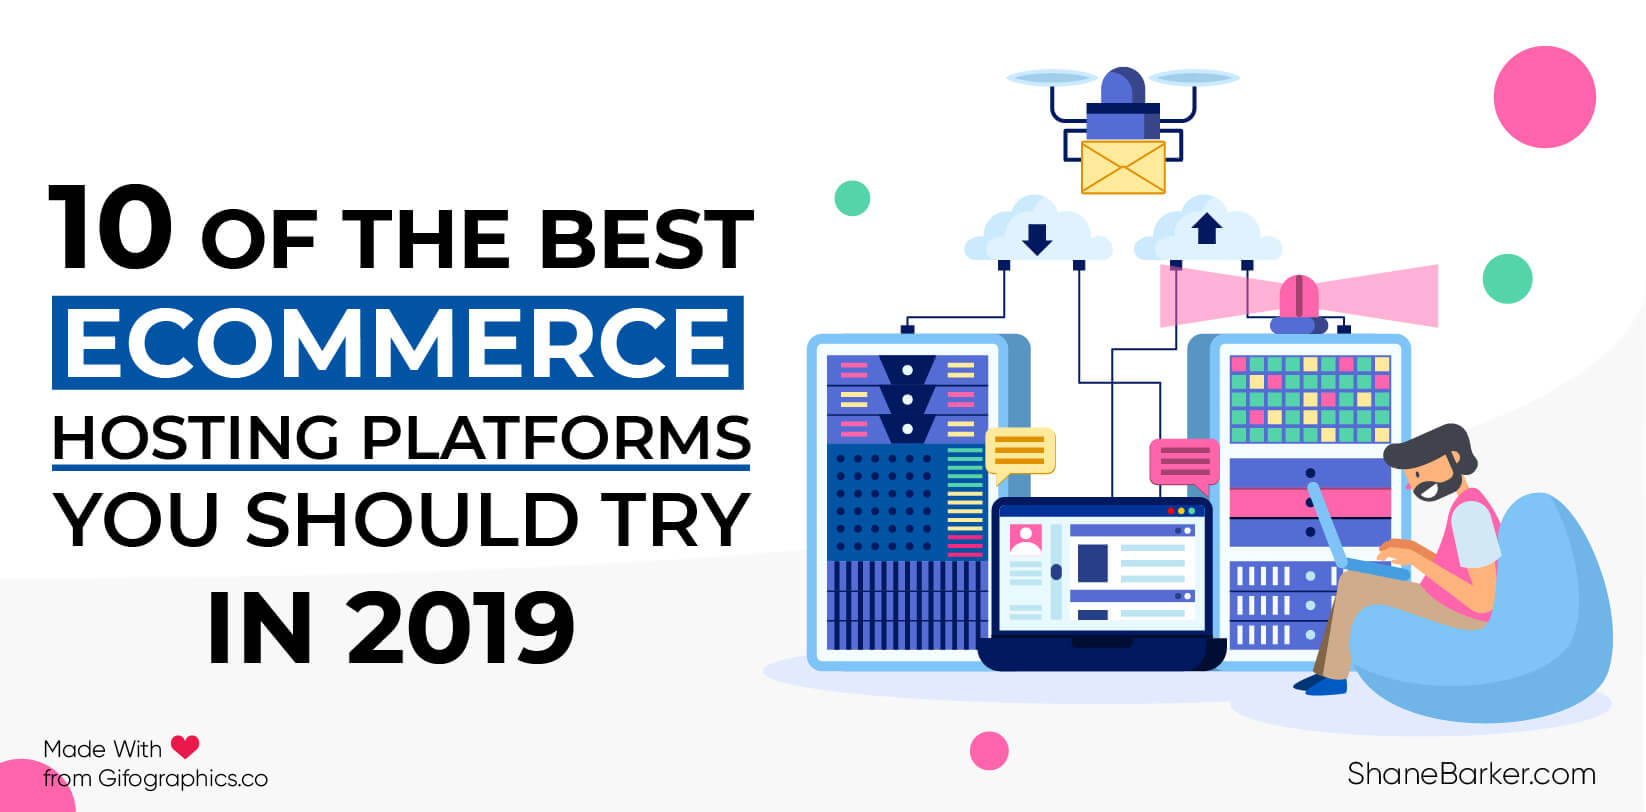 10 of the Best Ecommerce Hosting Platforms You Should Try in 2019